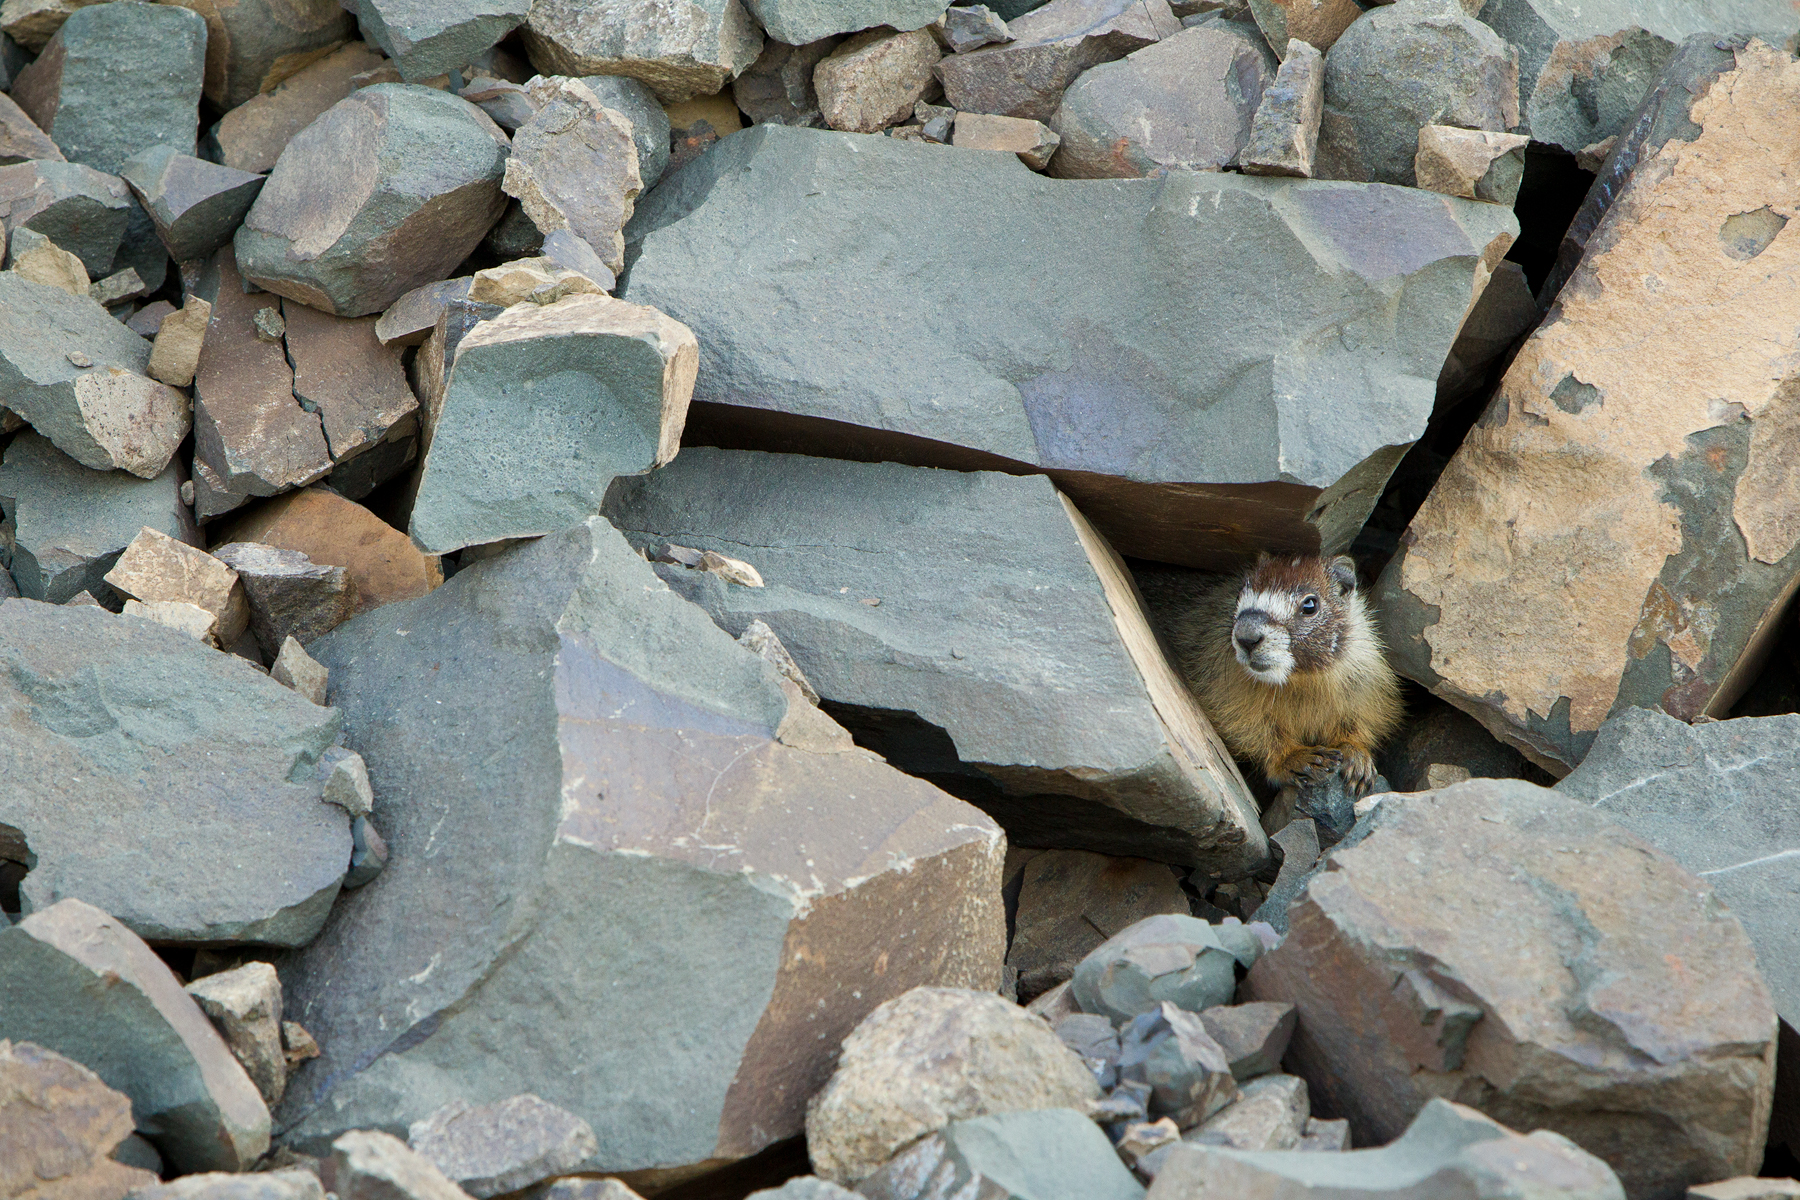 A Yellow-bellied Marmot surveys the outside world from it's home in a boulder field. Taken in Manning Provincial Park, B.C, Canada.  Image ©Connor Stefanison